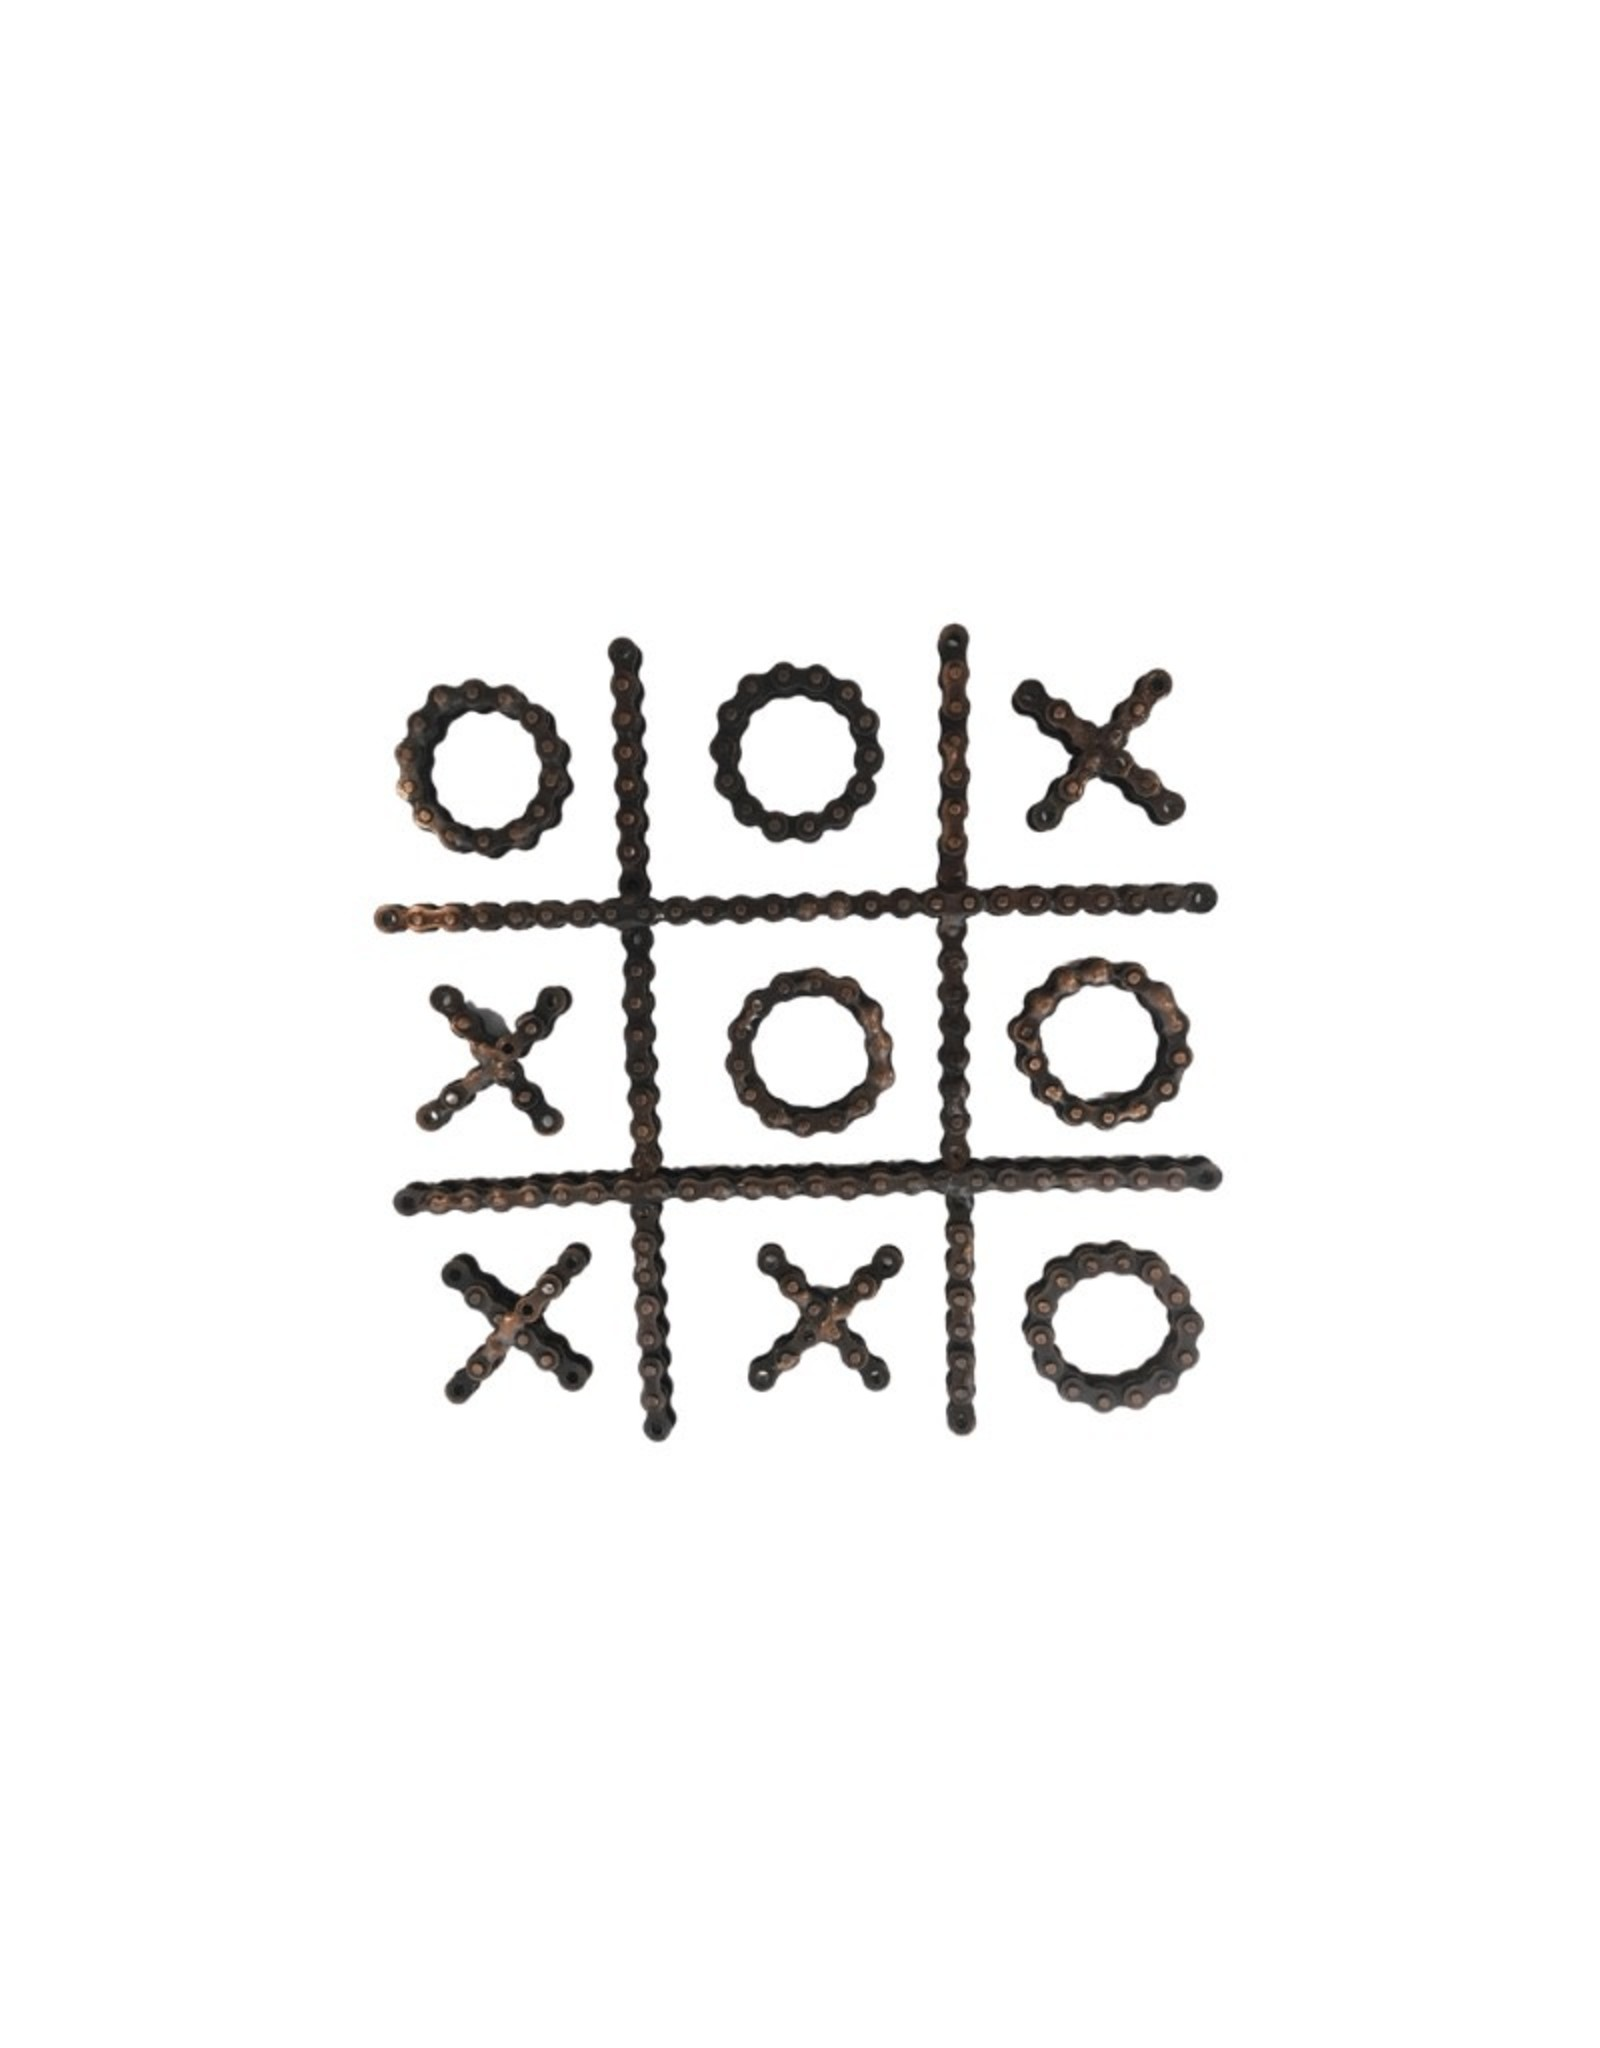 Ten Thousand Villages Tic Tac Toe Bicycle Chain Game